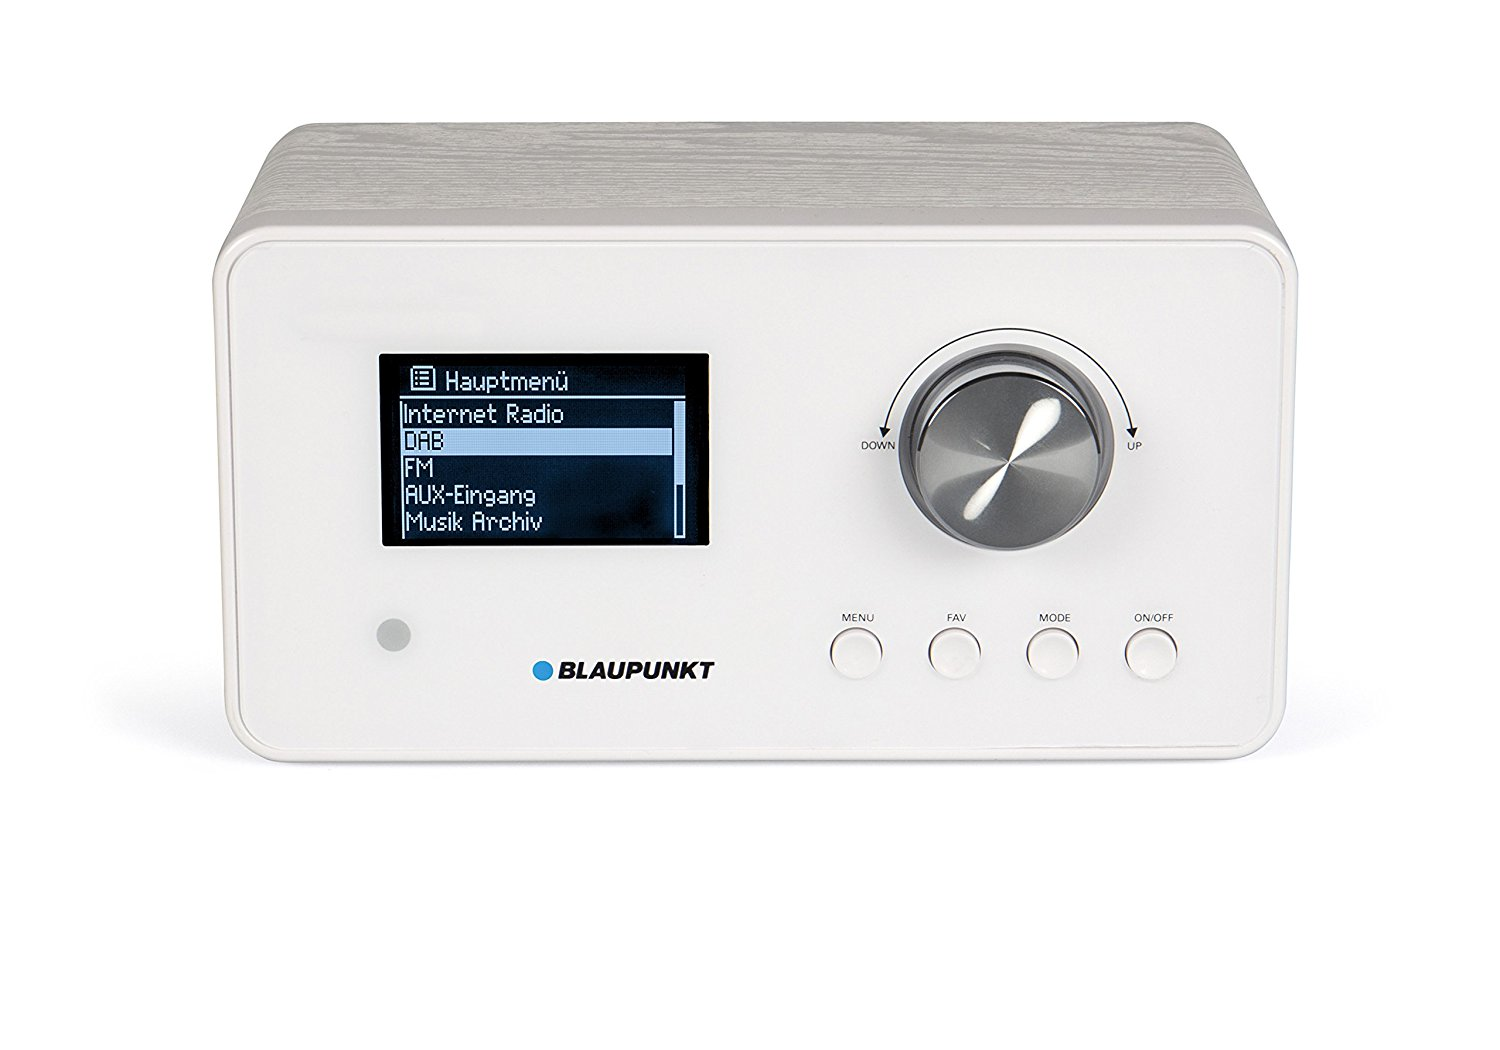 Küchen Internetradio Wlan Blaupunkt Ird 30 Internetradio Dab Digitalradio Wecker